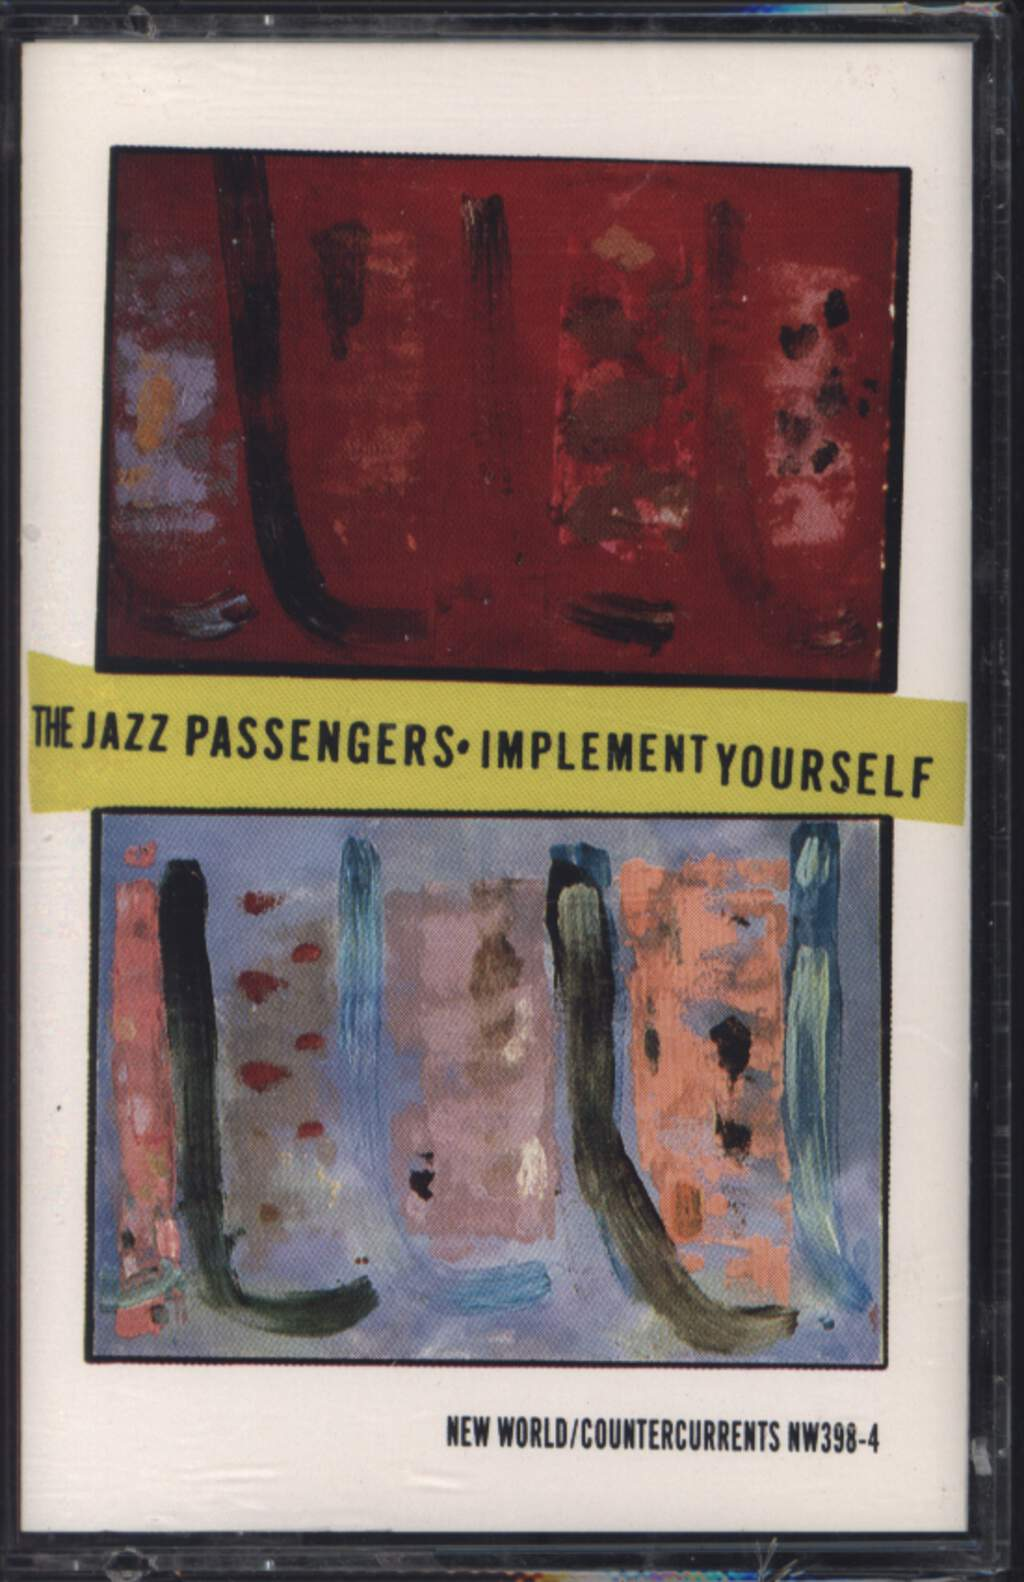 The Jazz Passengers: Implement Yourself, Compact Cassette